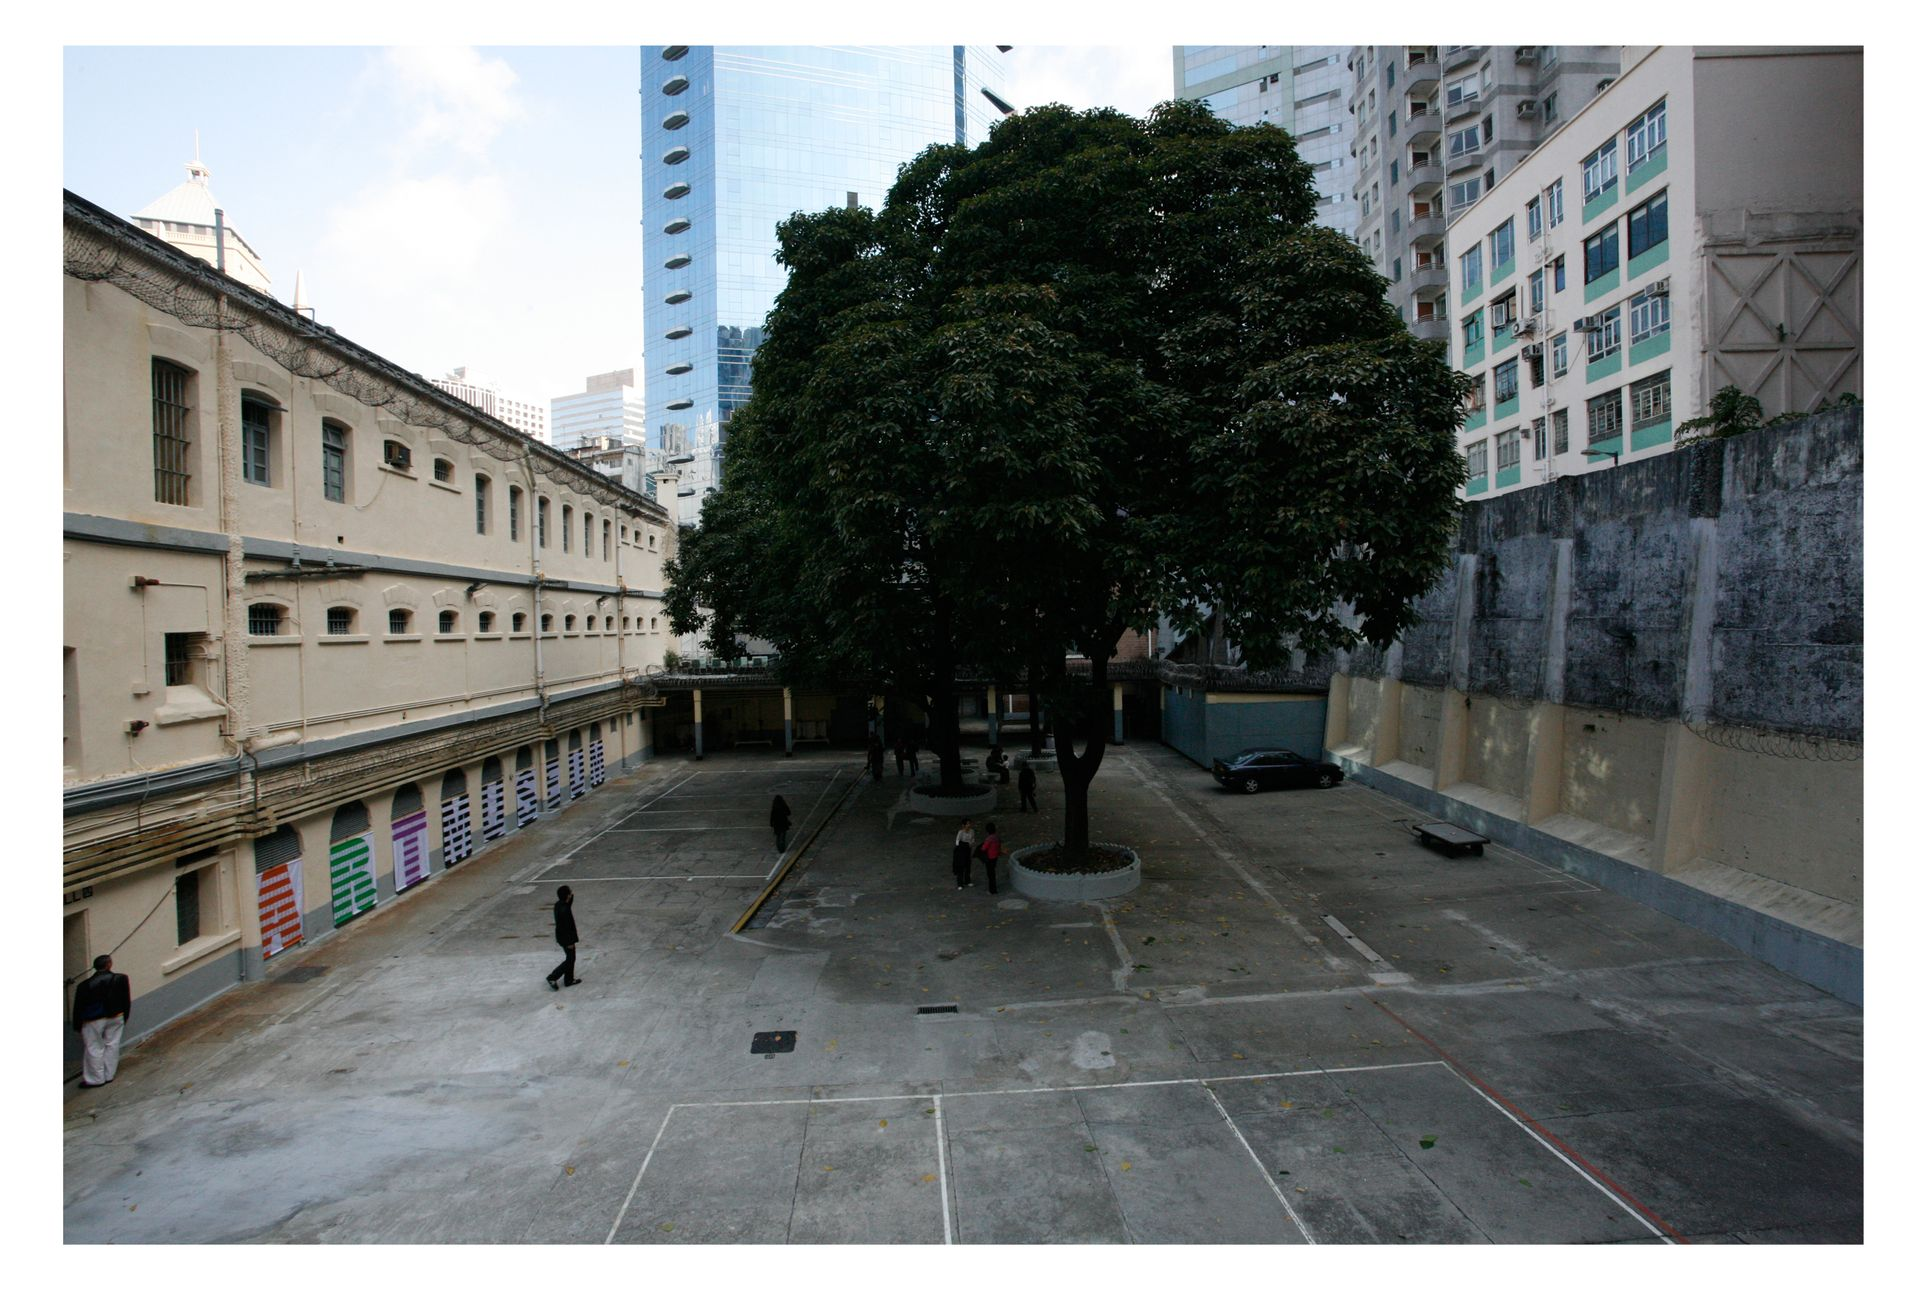 Courtyard, old Central Police Station, 2006